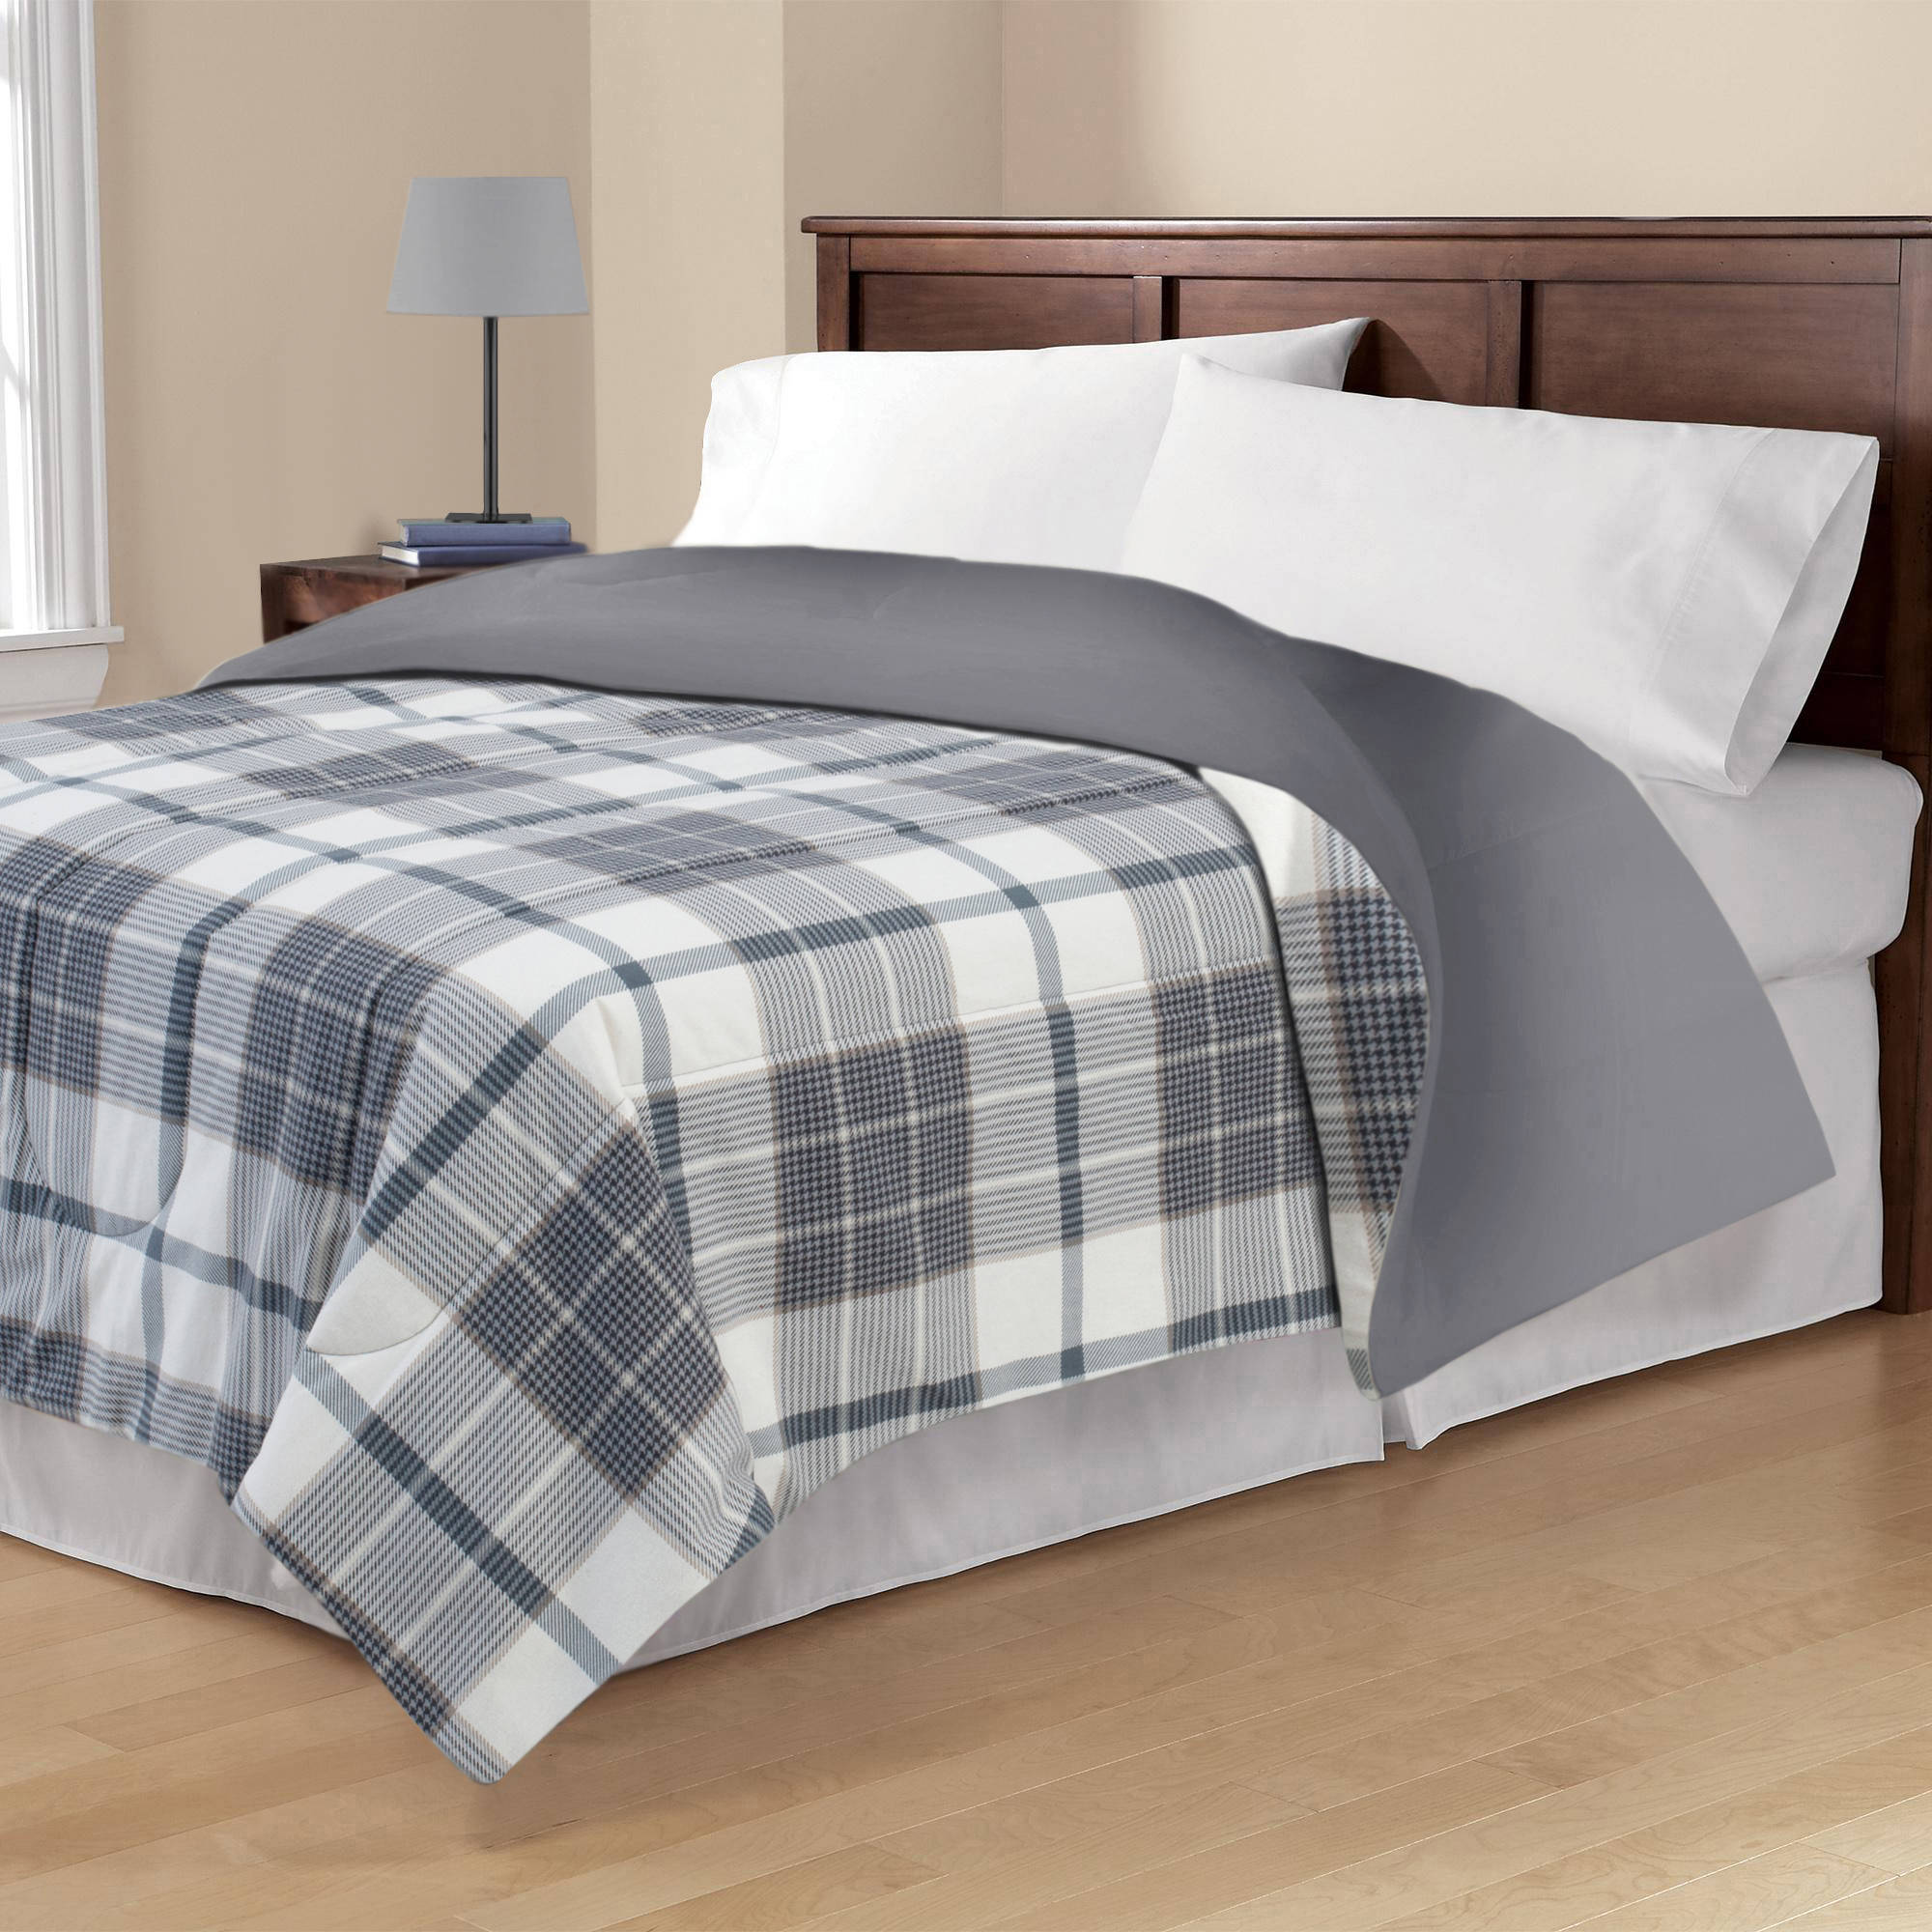 sewn green set comforter plaid bedding project handsome sets